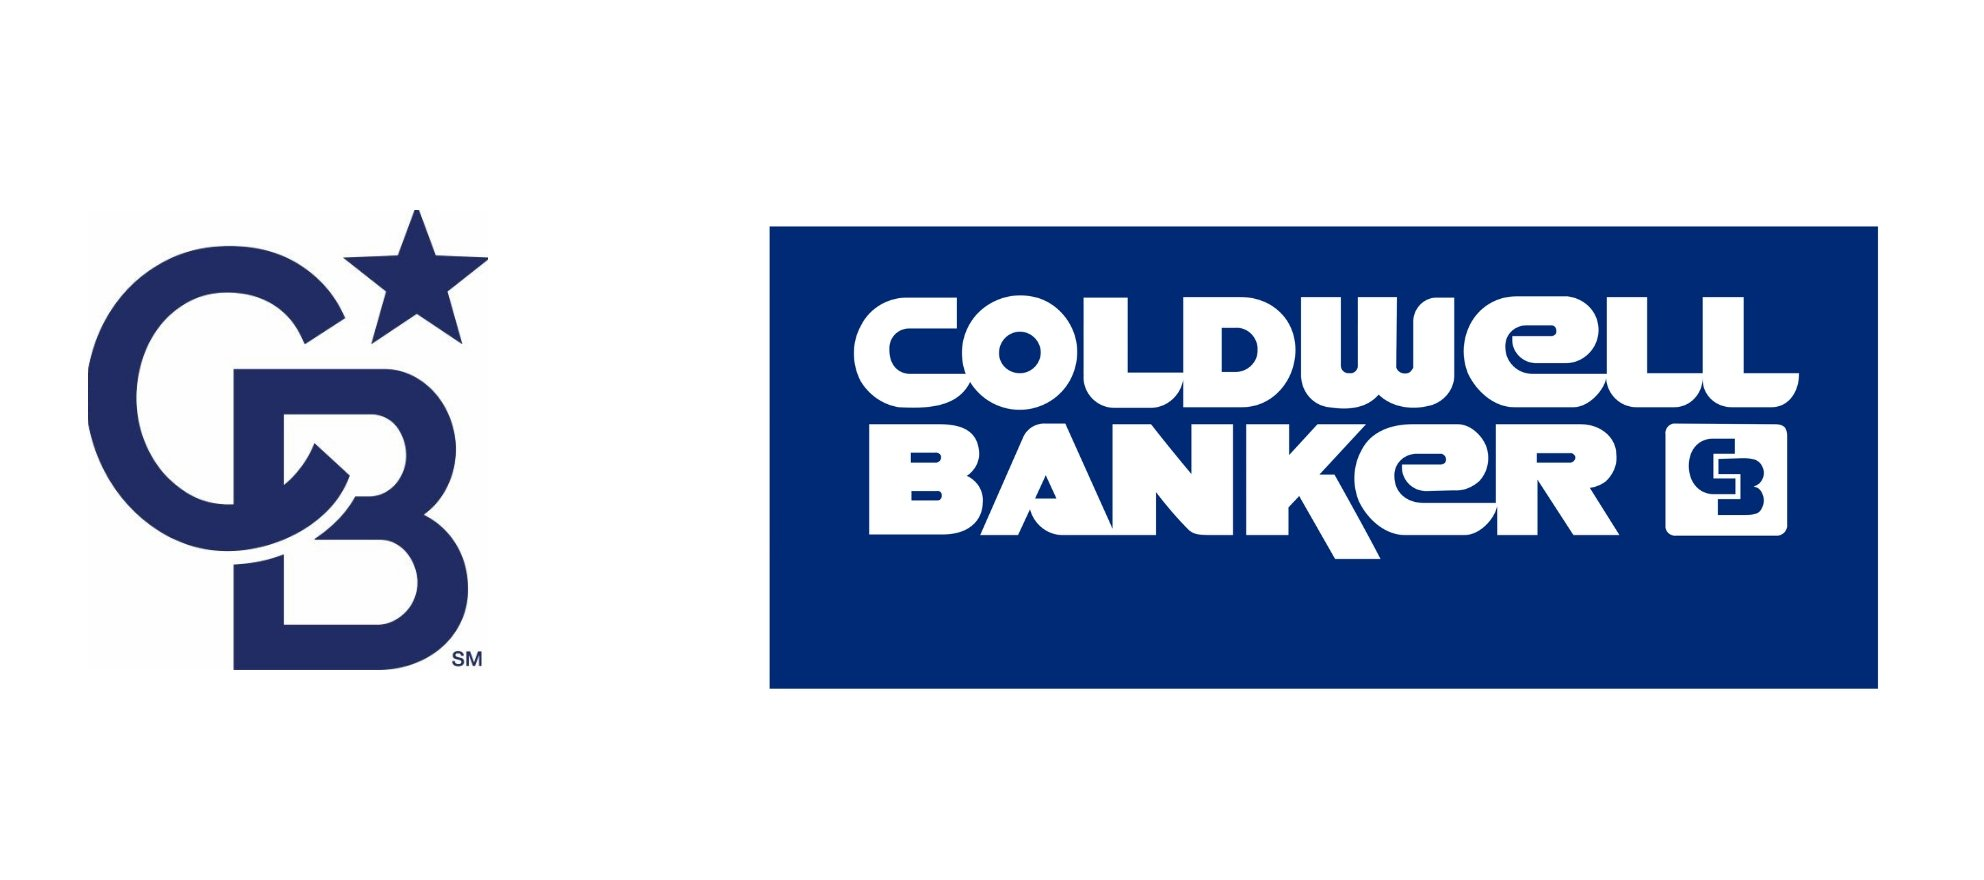 New Coldwell Banker logo